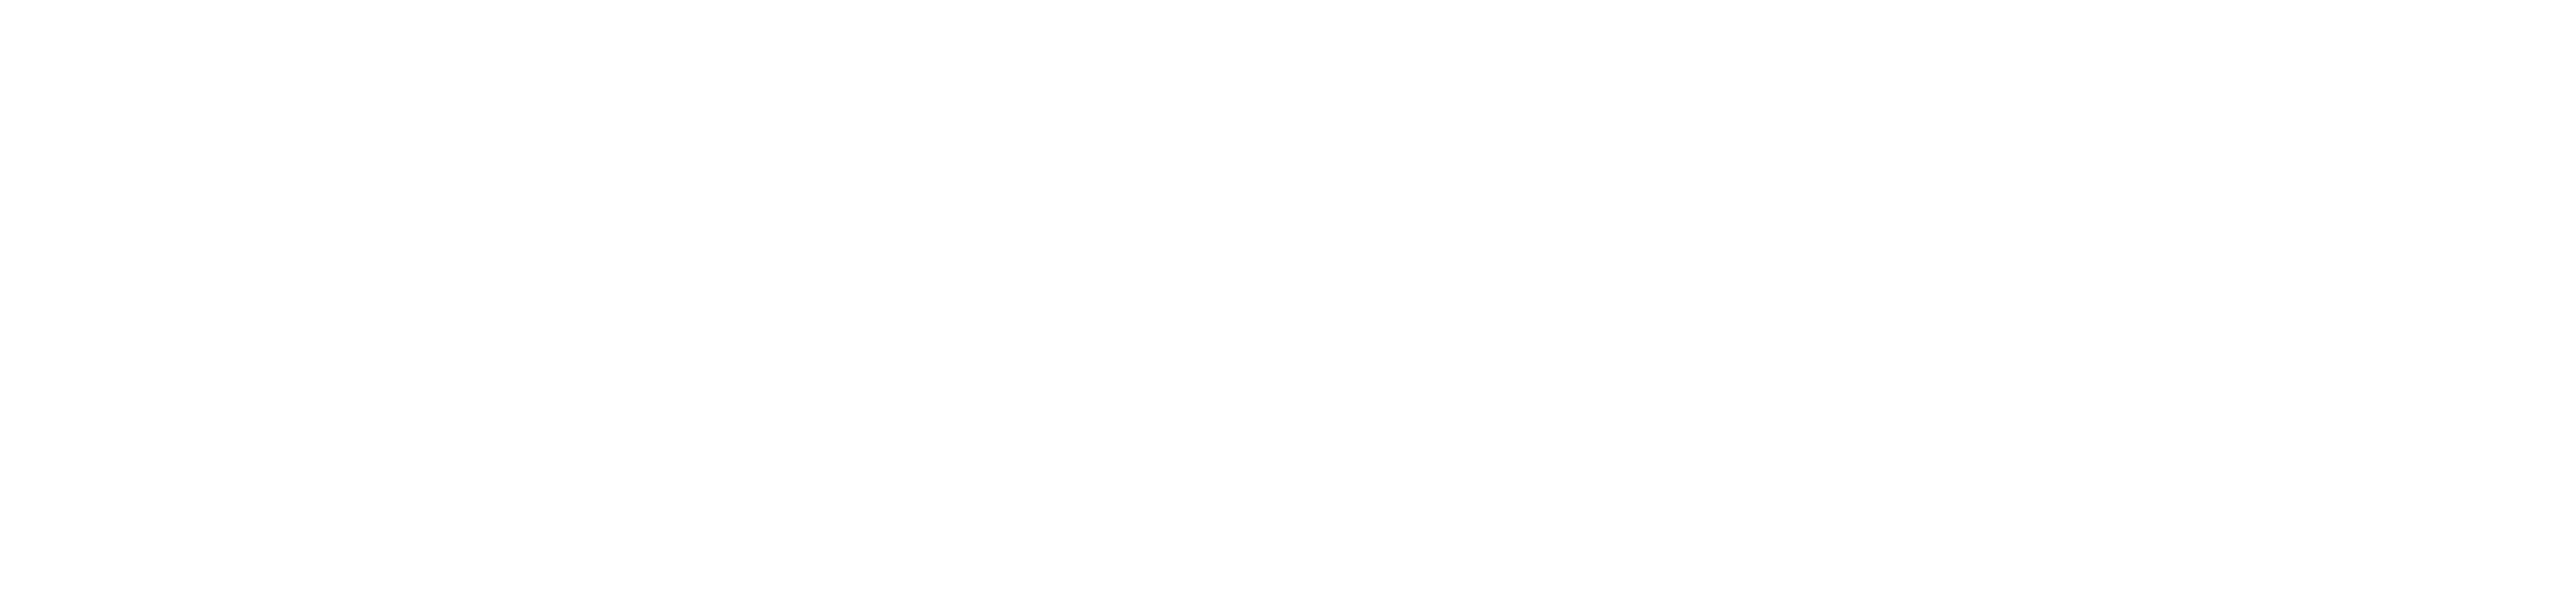 Port Agencies Amsterdam